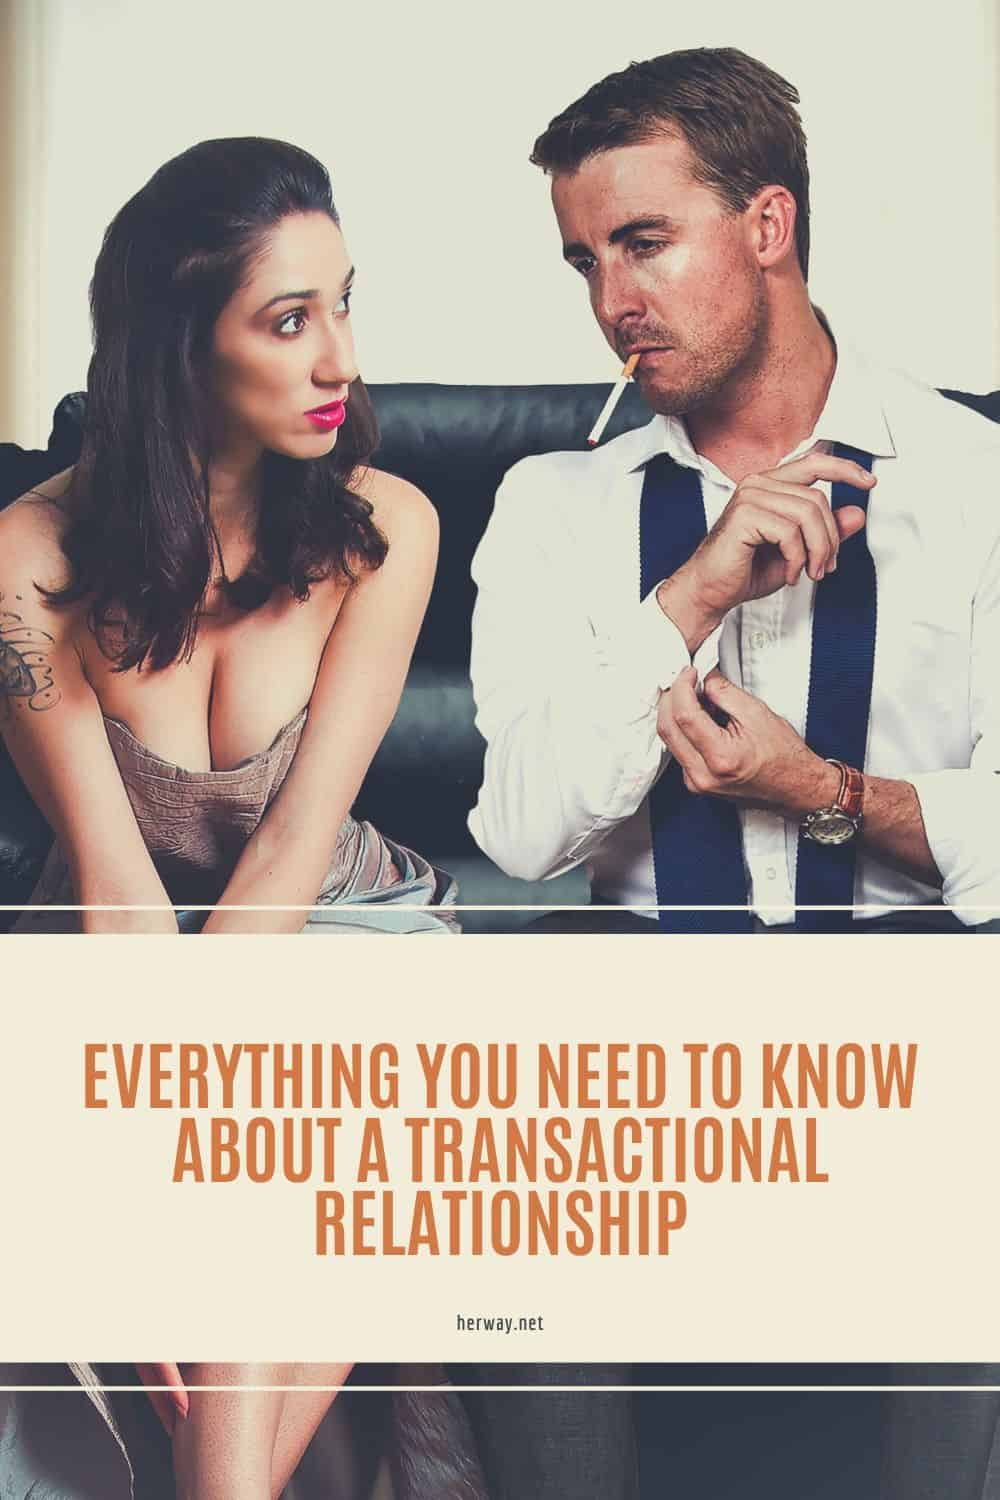 Everything You Need To Know About A Transactional Relationship